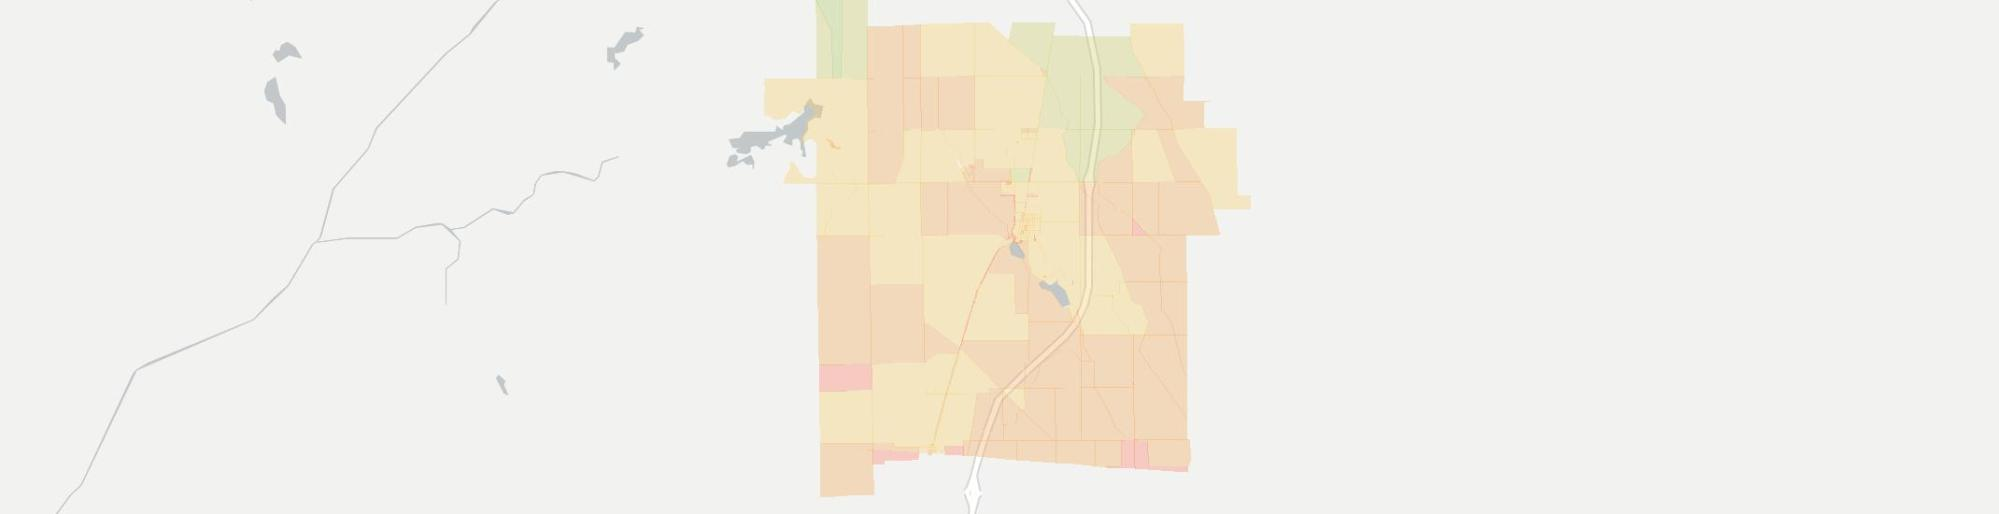 hight resolution of internet provider competition map for lakeville